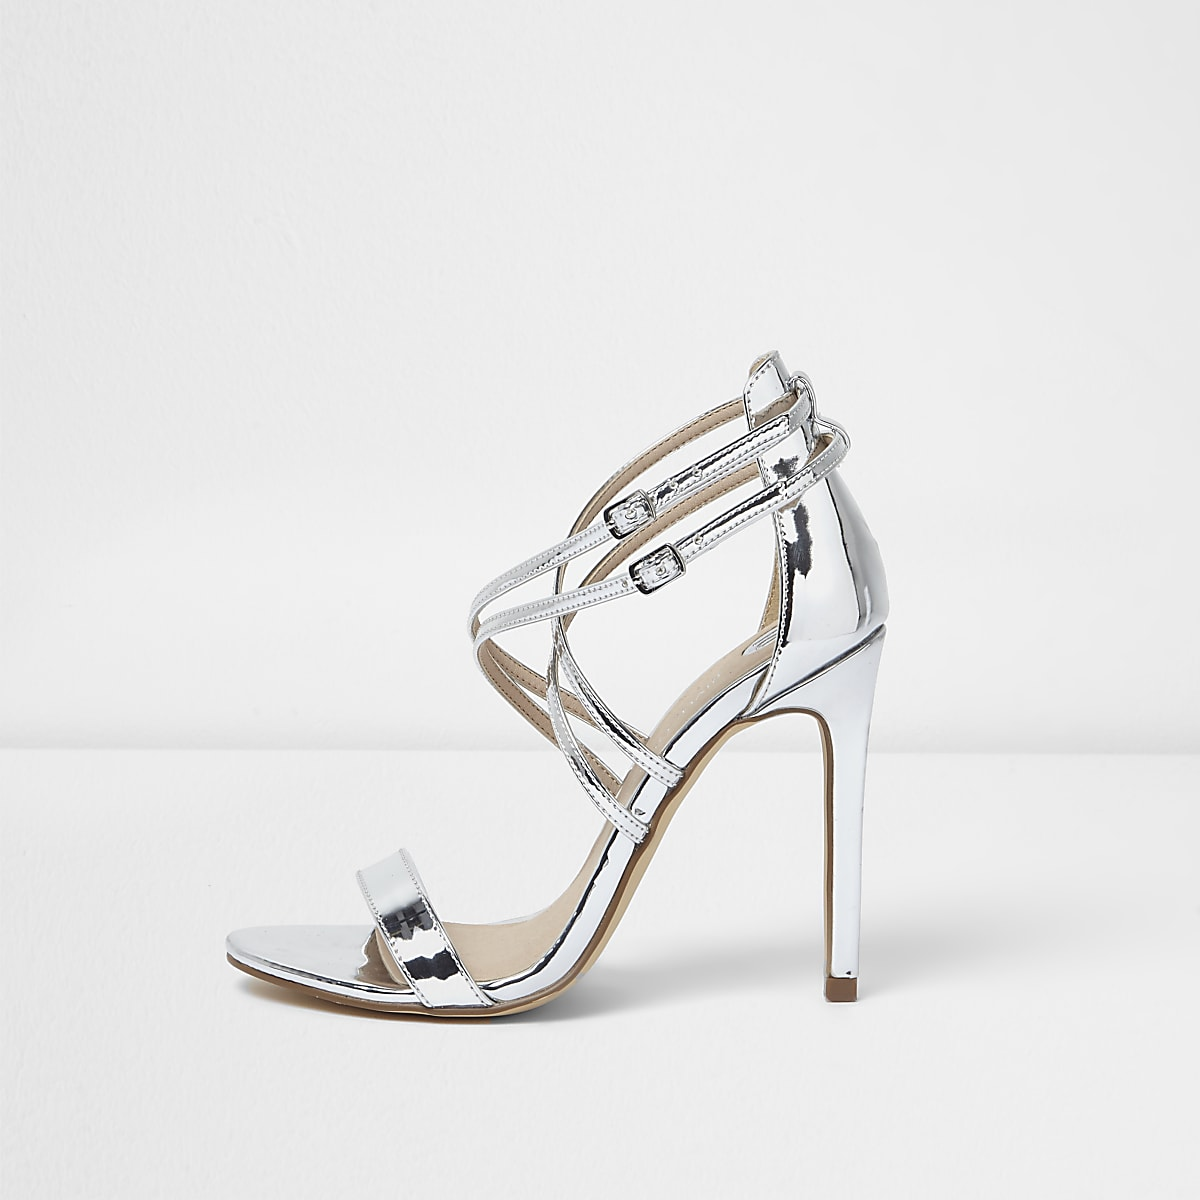 a43ddde5165 Silver metallic barely there strappy heels - Sandals - Shoes   Boots - women